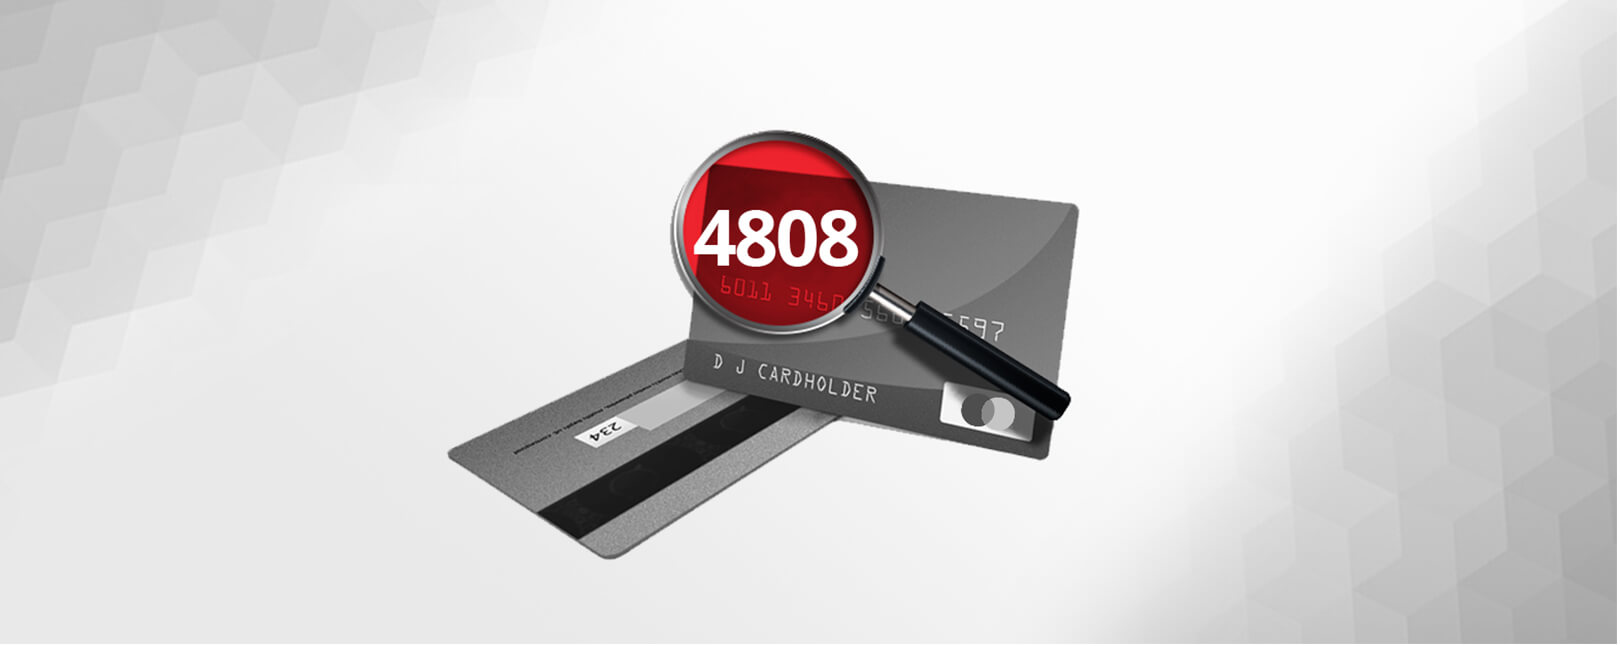 4808- Cardholder-Activated Terminal (CAT) 3 Device